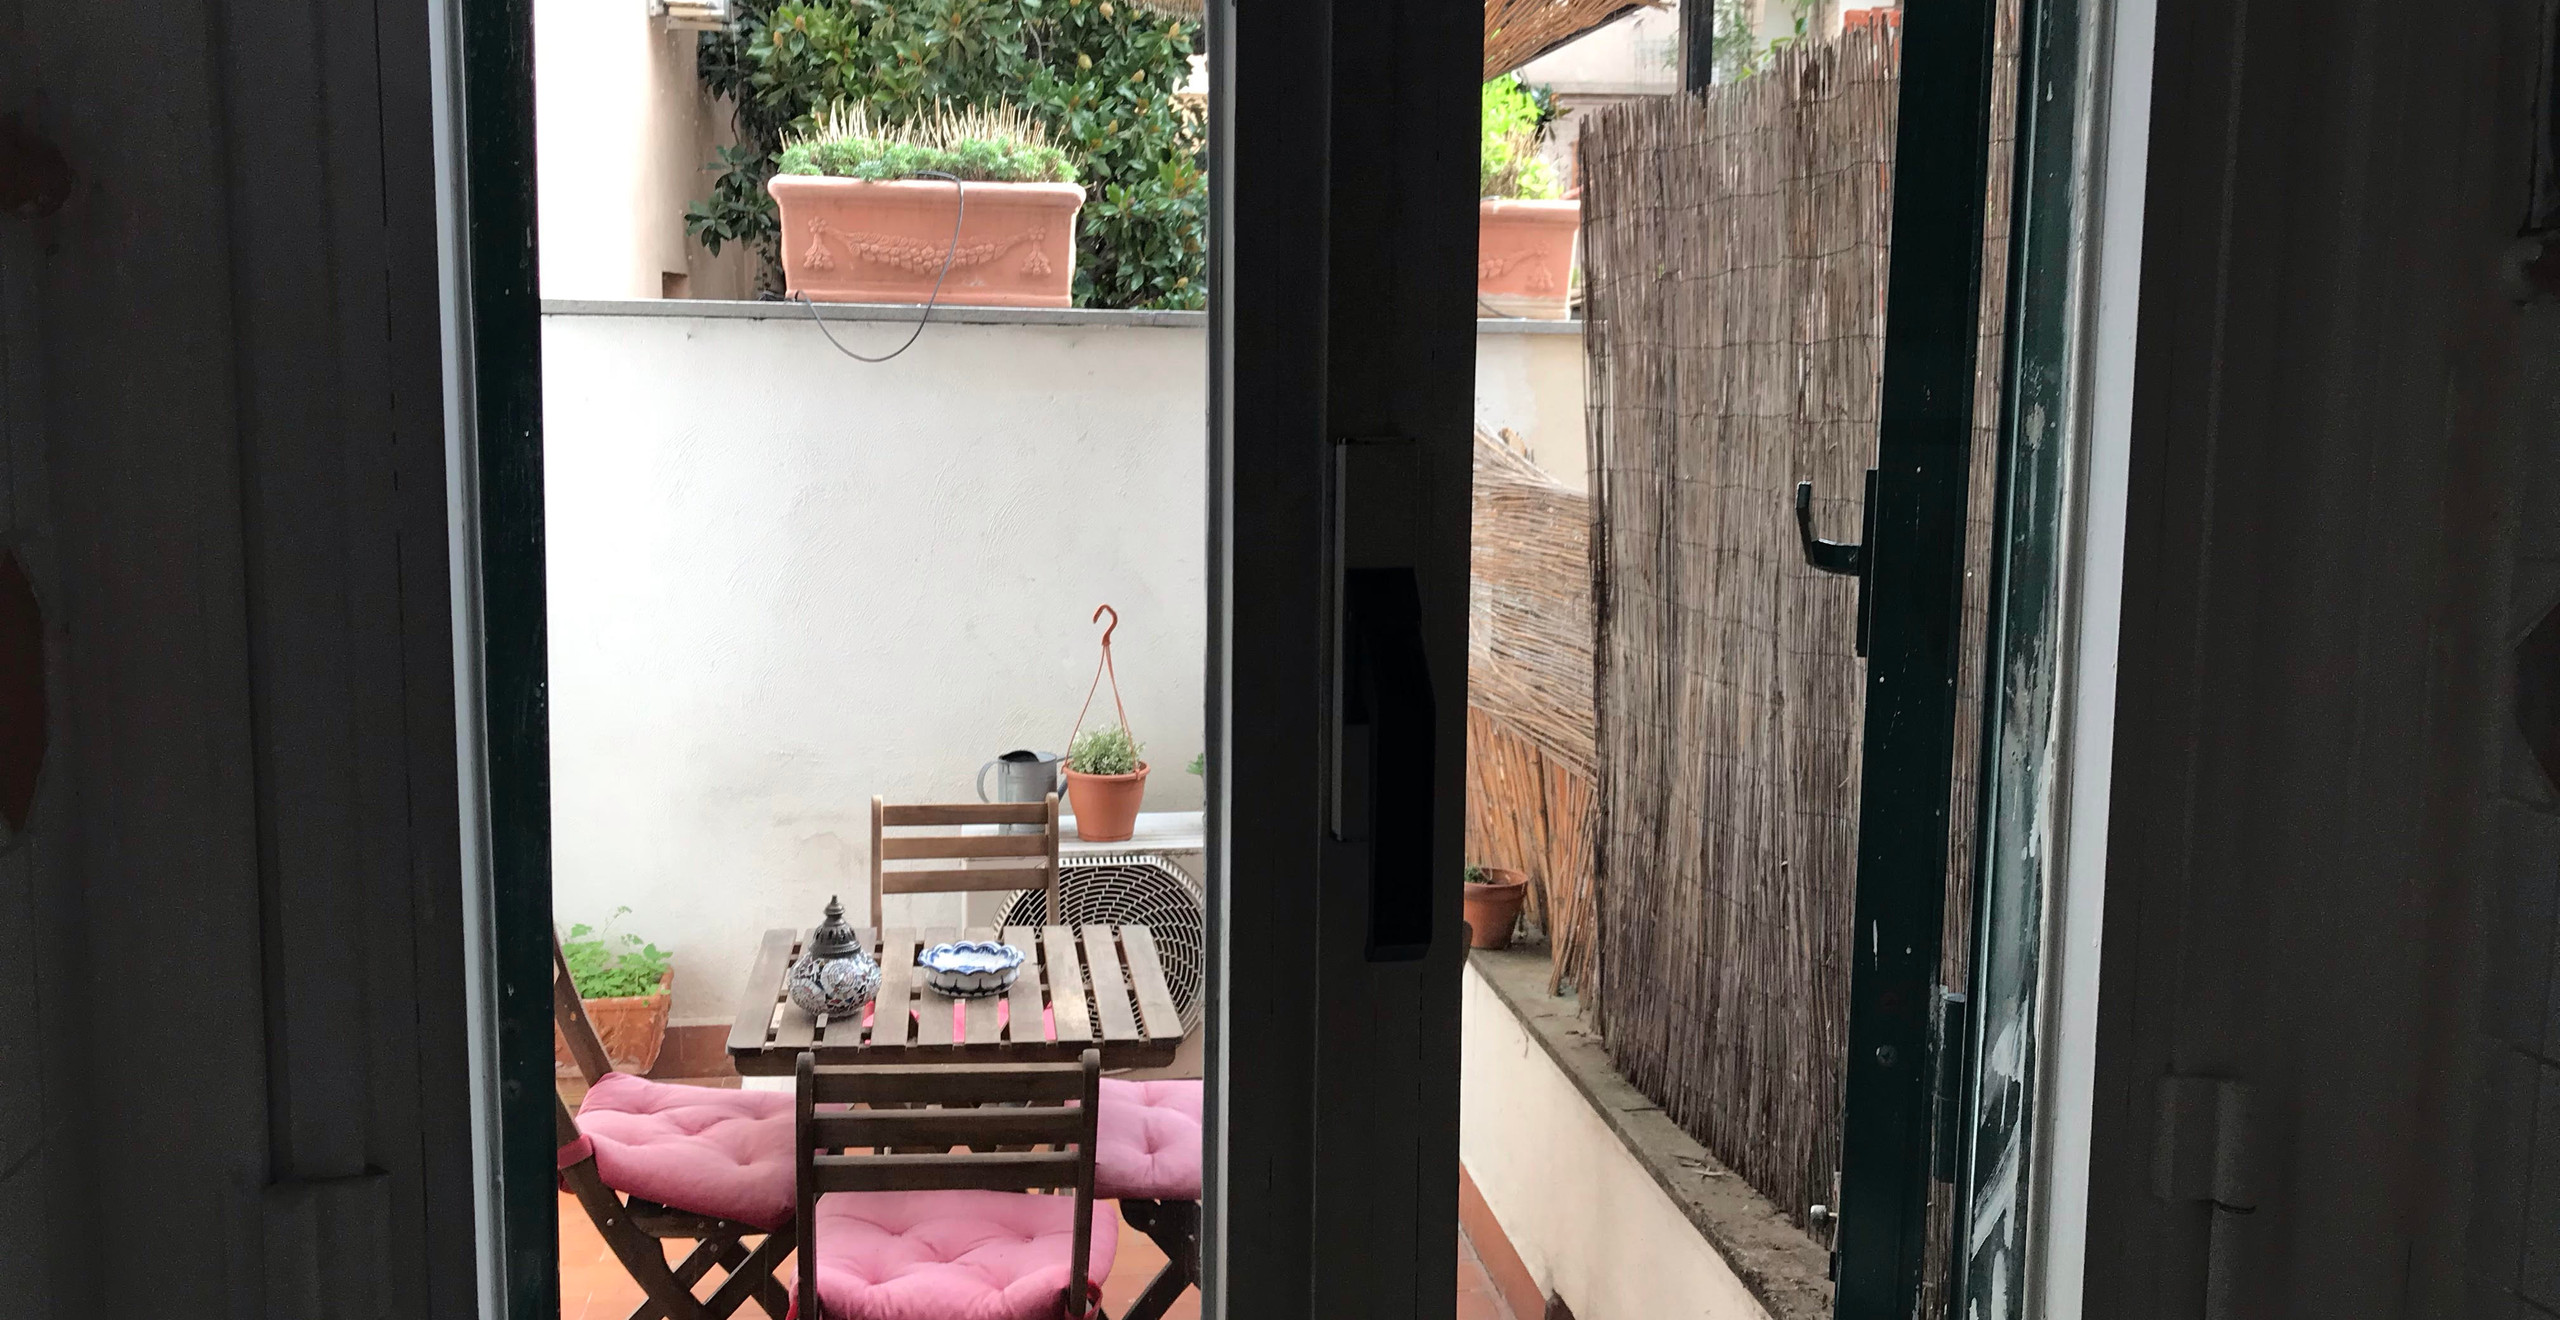 Lively little outdoor space in our Airbnb.